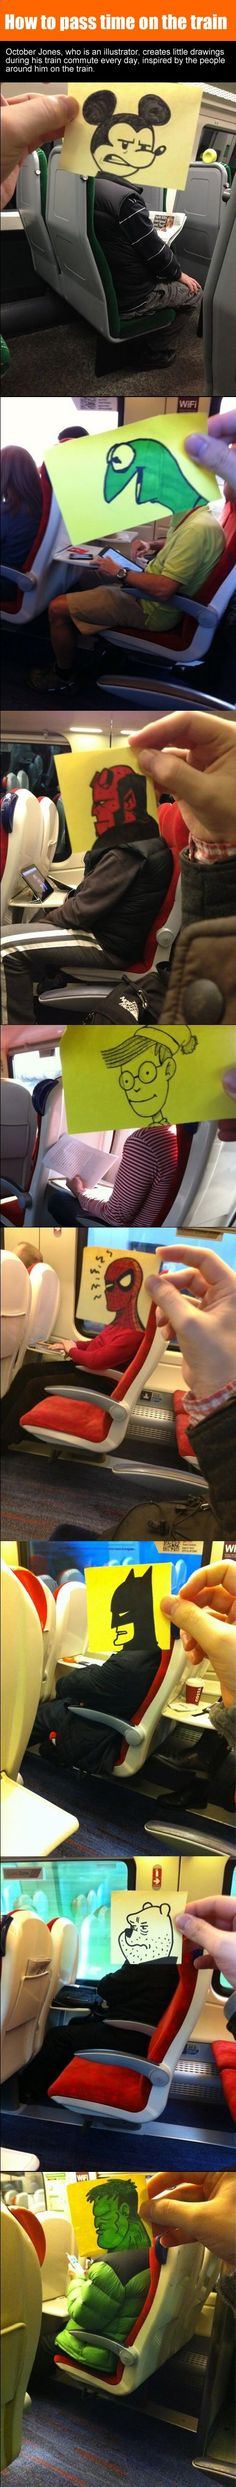 Hahaha !!!! . think ill do this next time im on a plane